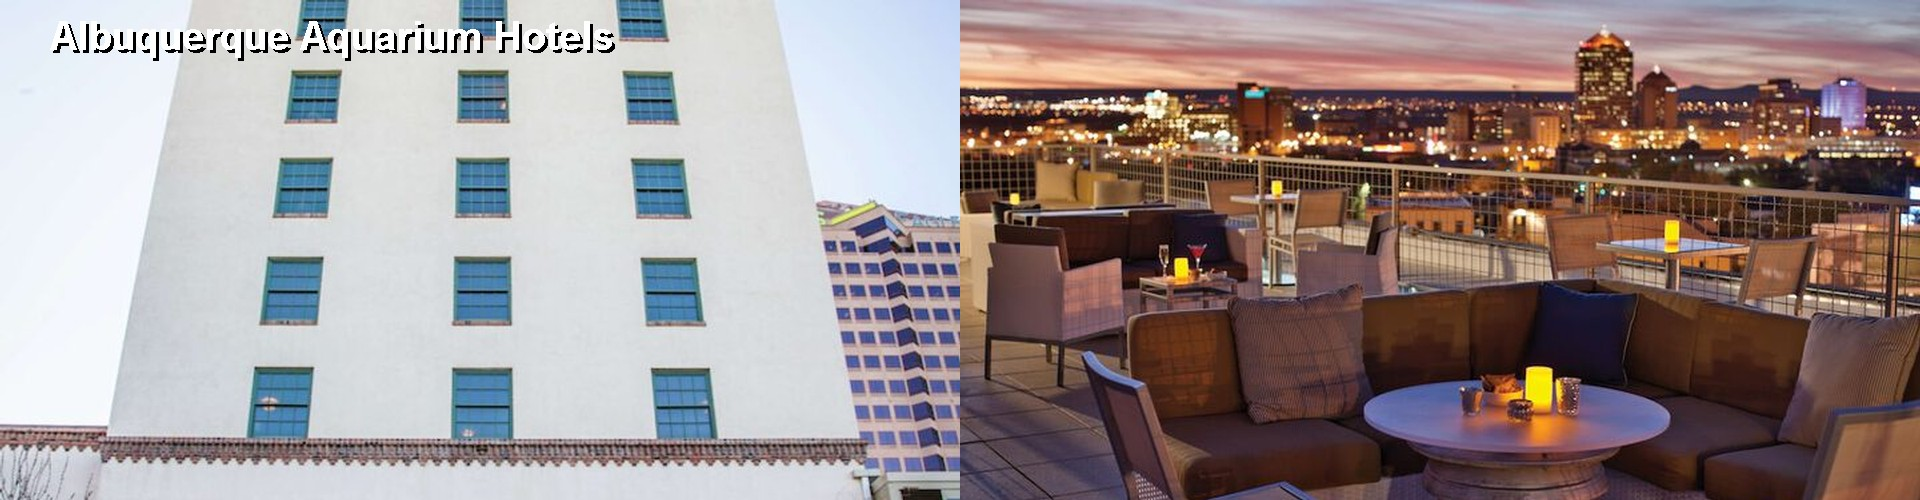 5 Best Hotels near Albuquerque Aquarium